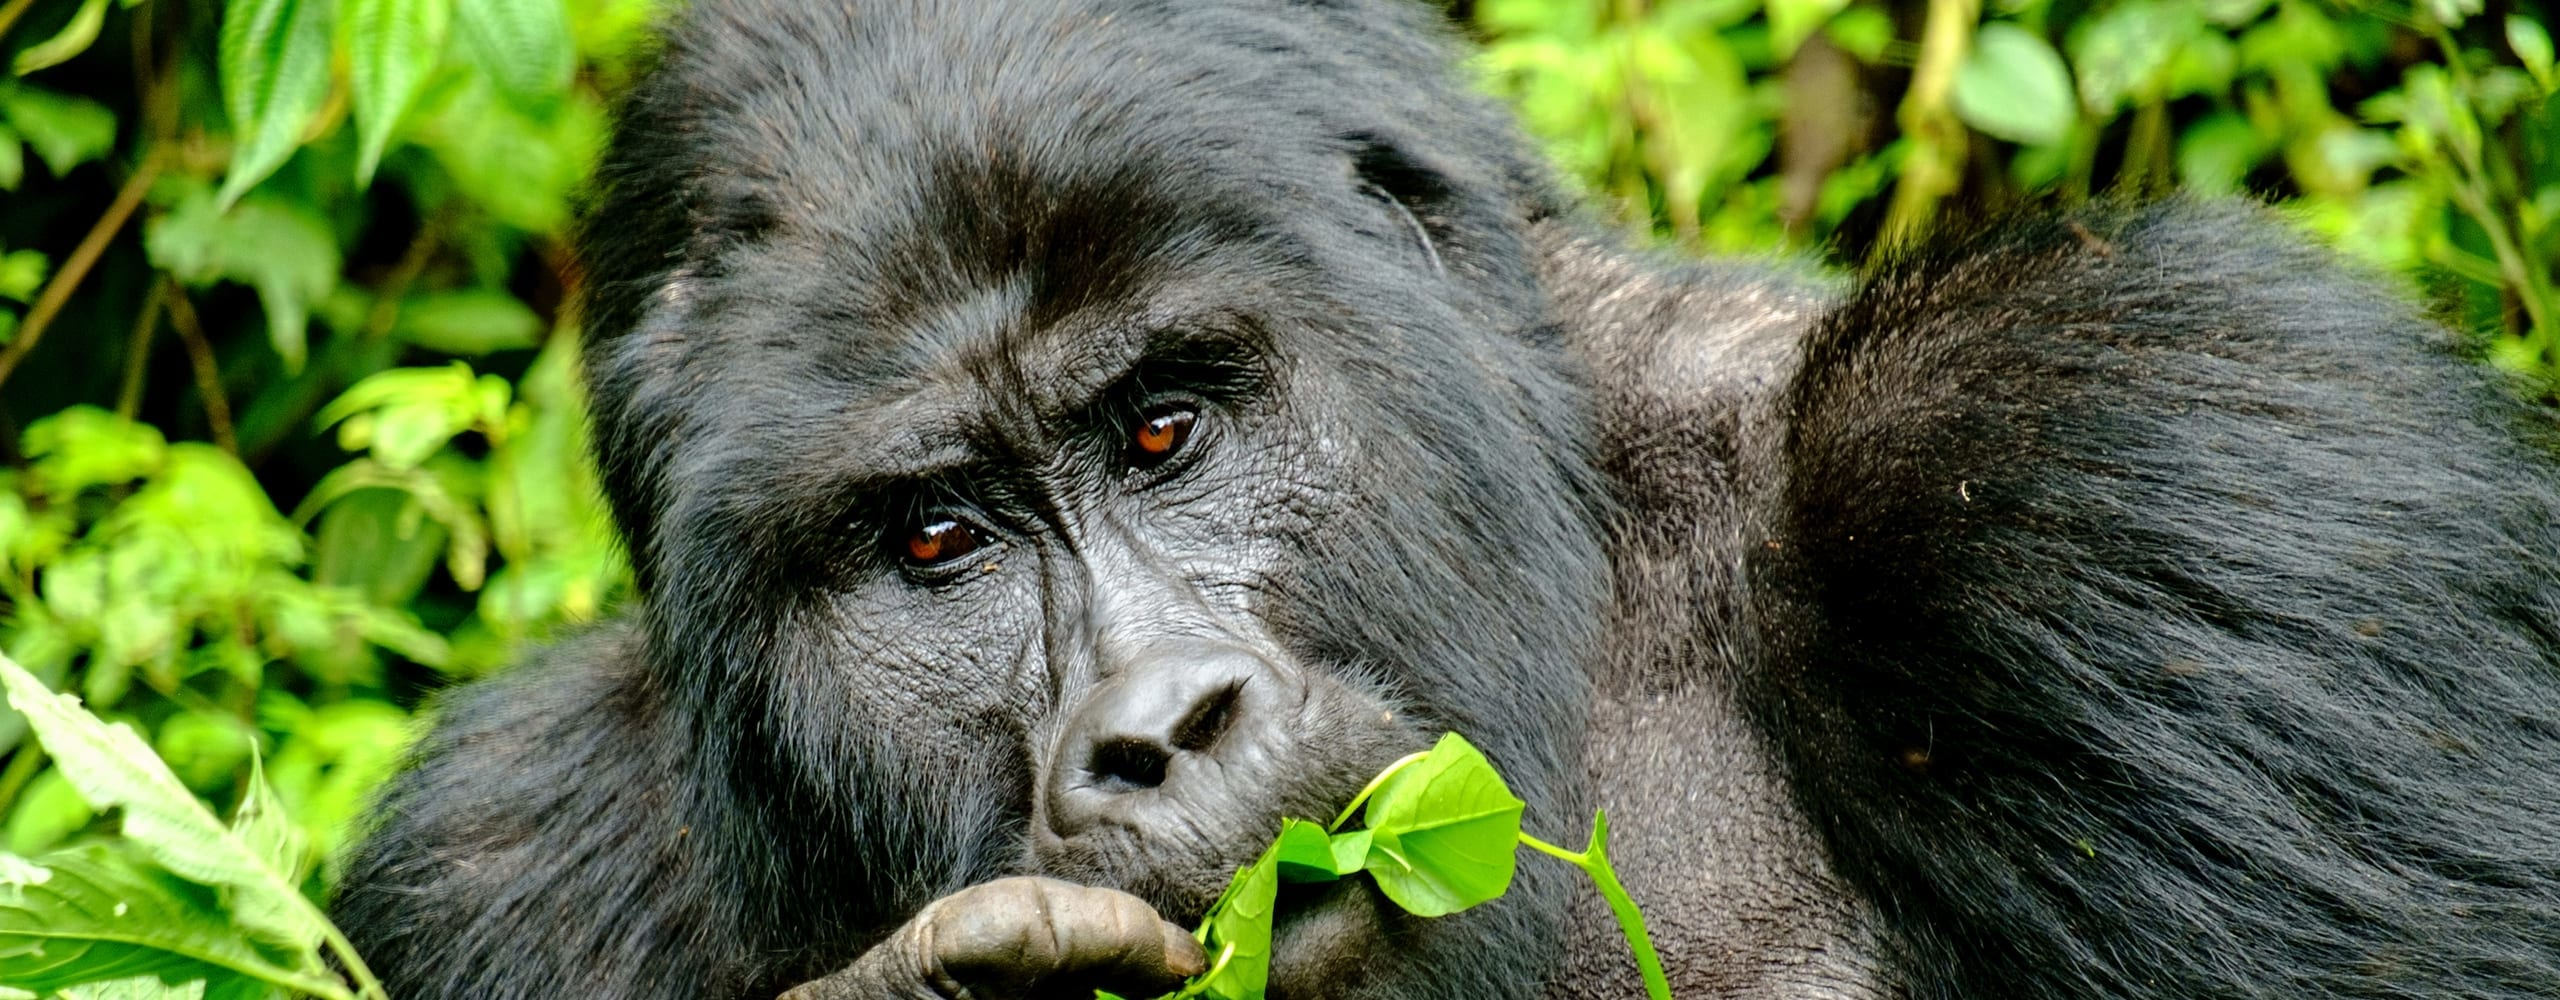 You'll never forget seeing a silverback mountain gorilla in Bwindi Impenetrable Forest. © iStock